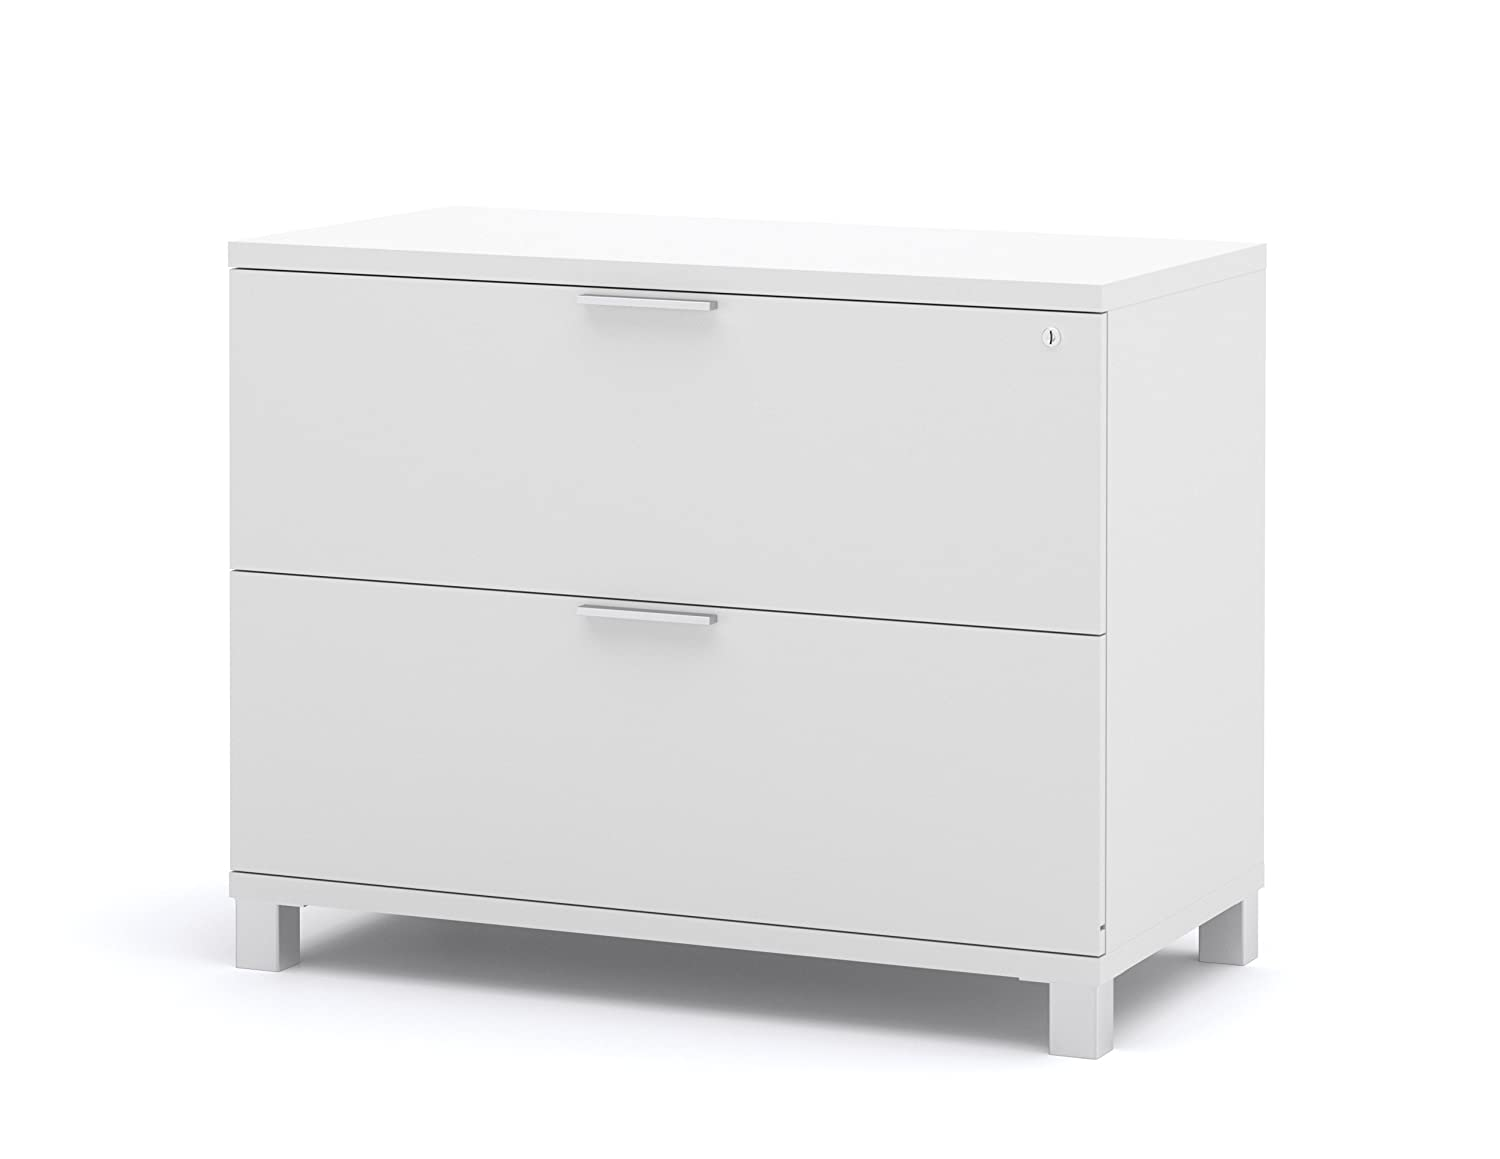 Superbe Amazon.com: Bestar Pro Linea Assembled Lateral File Drawer, White: Kitchen  U0026 Dining